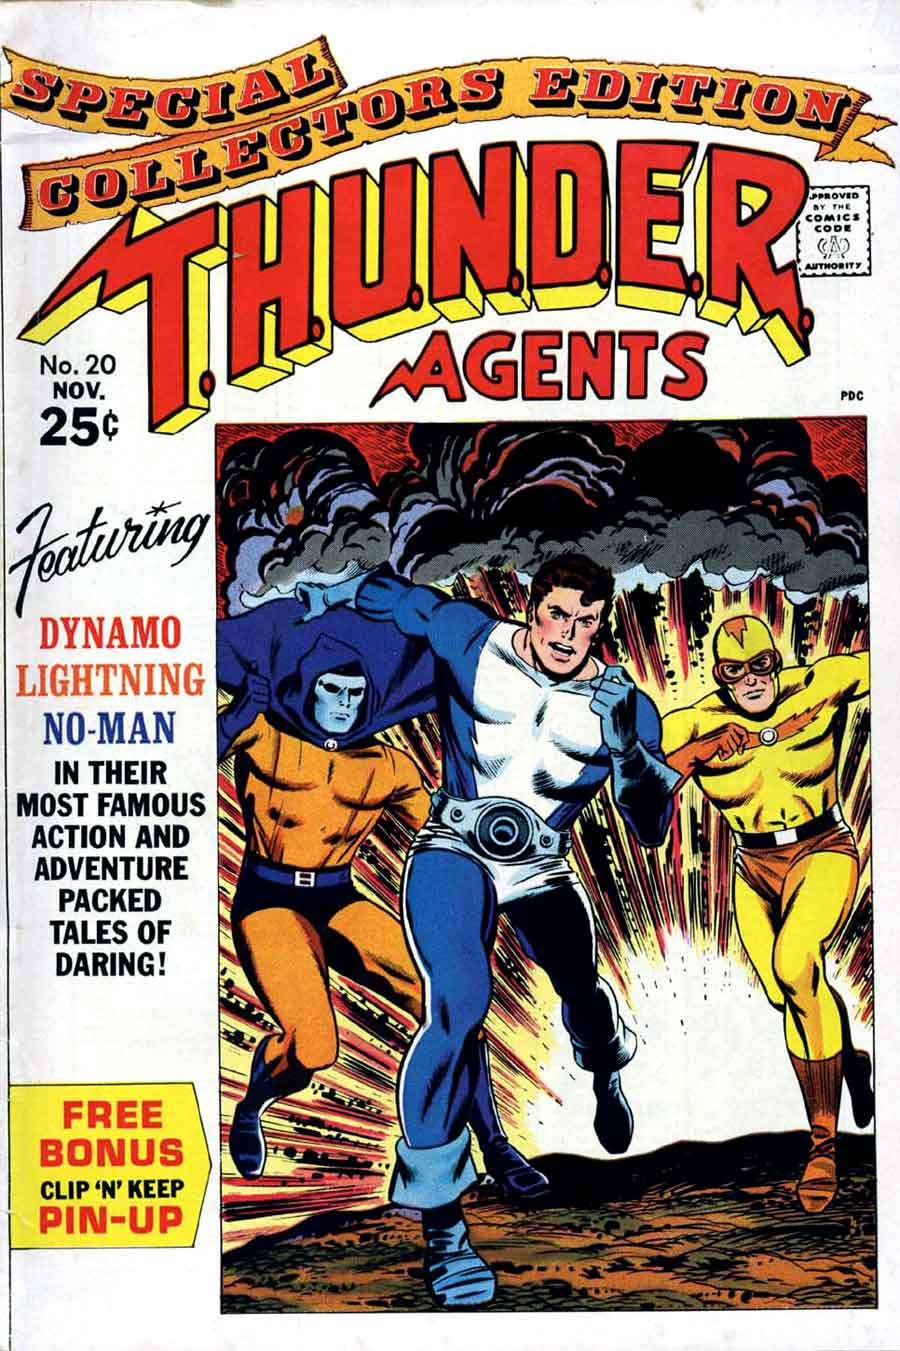 Thunder Agents v1 #20 tower silver age 1960s comic book cover art